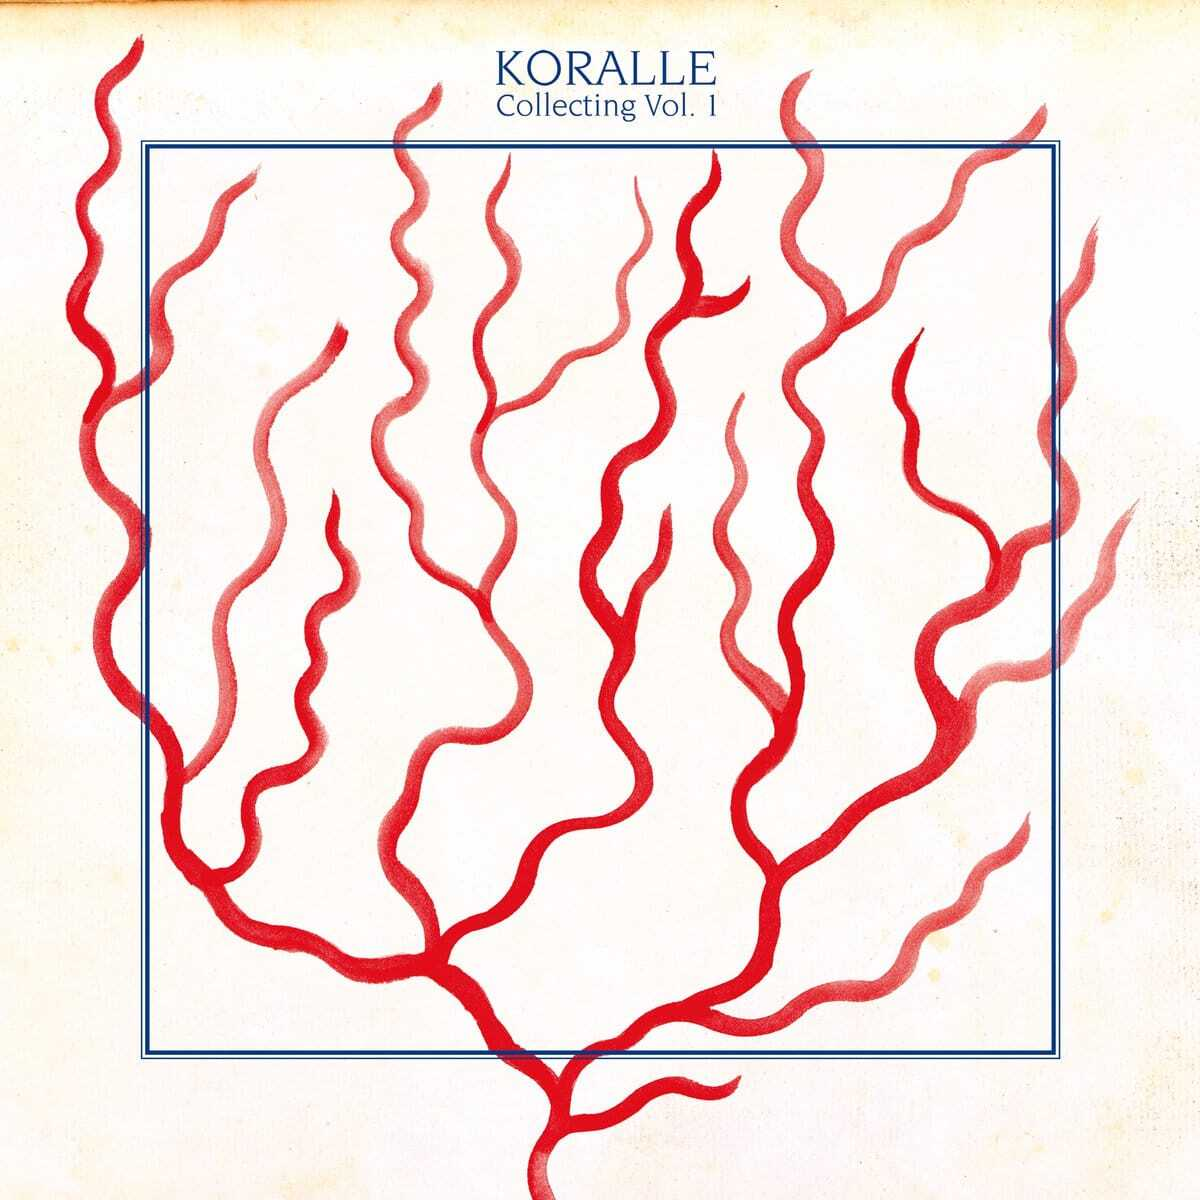 Koralle - Collecting Vol. 1